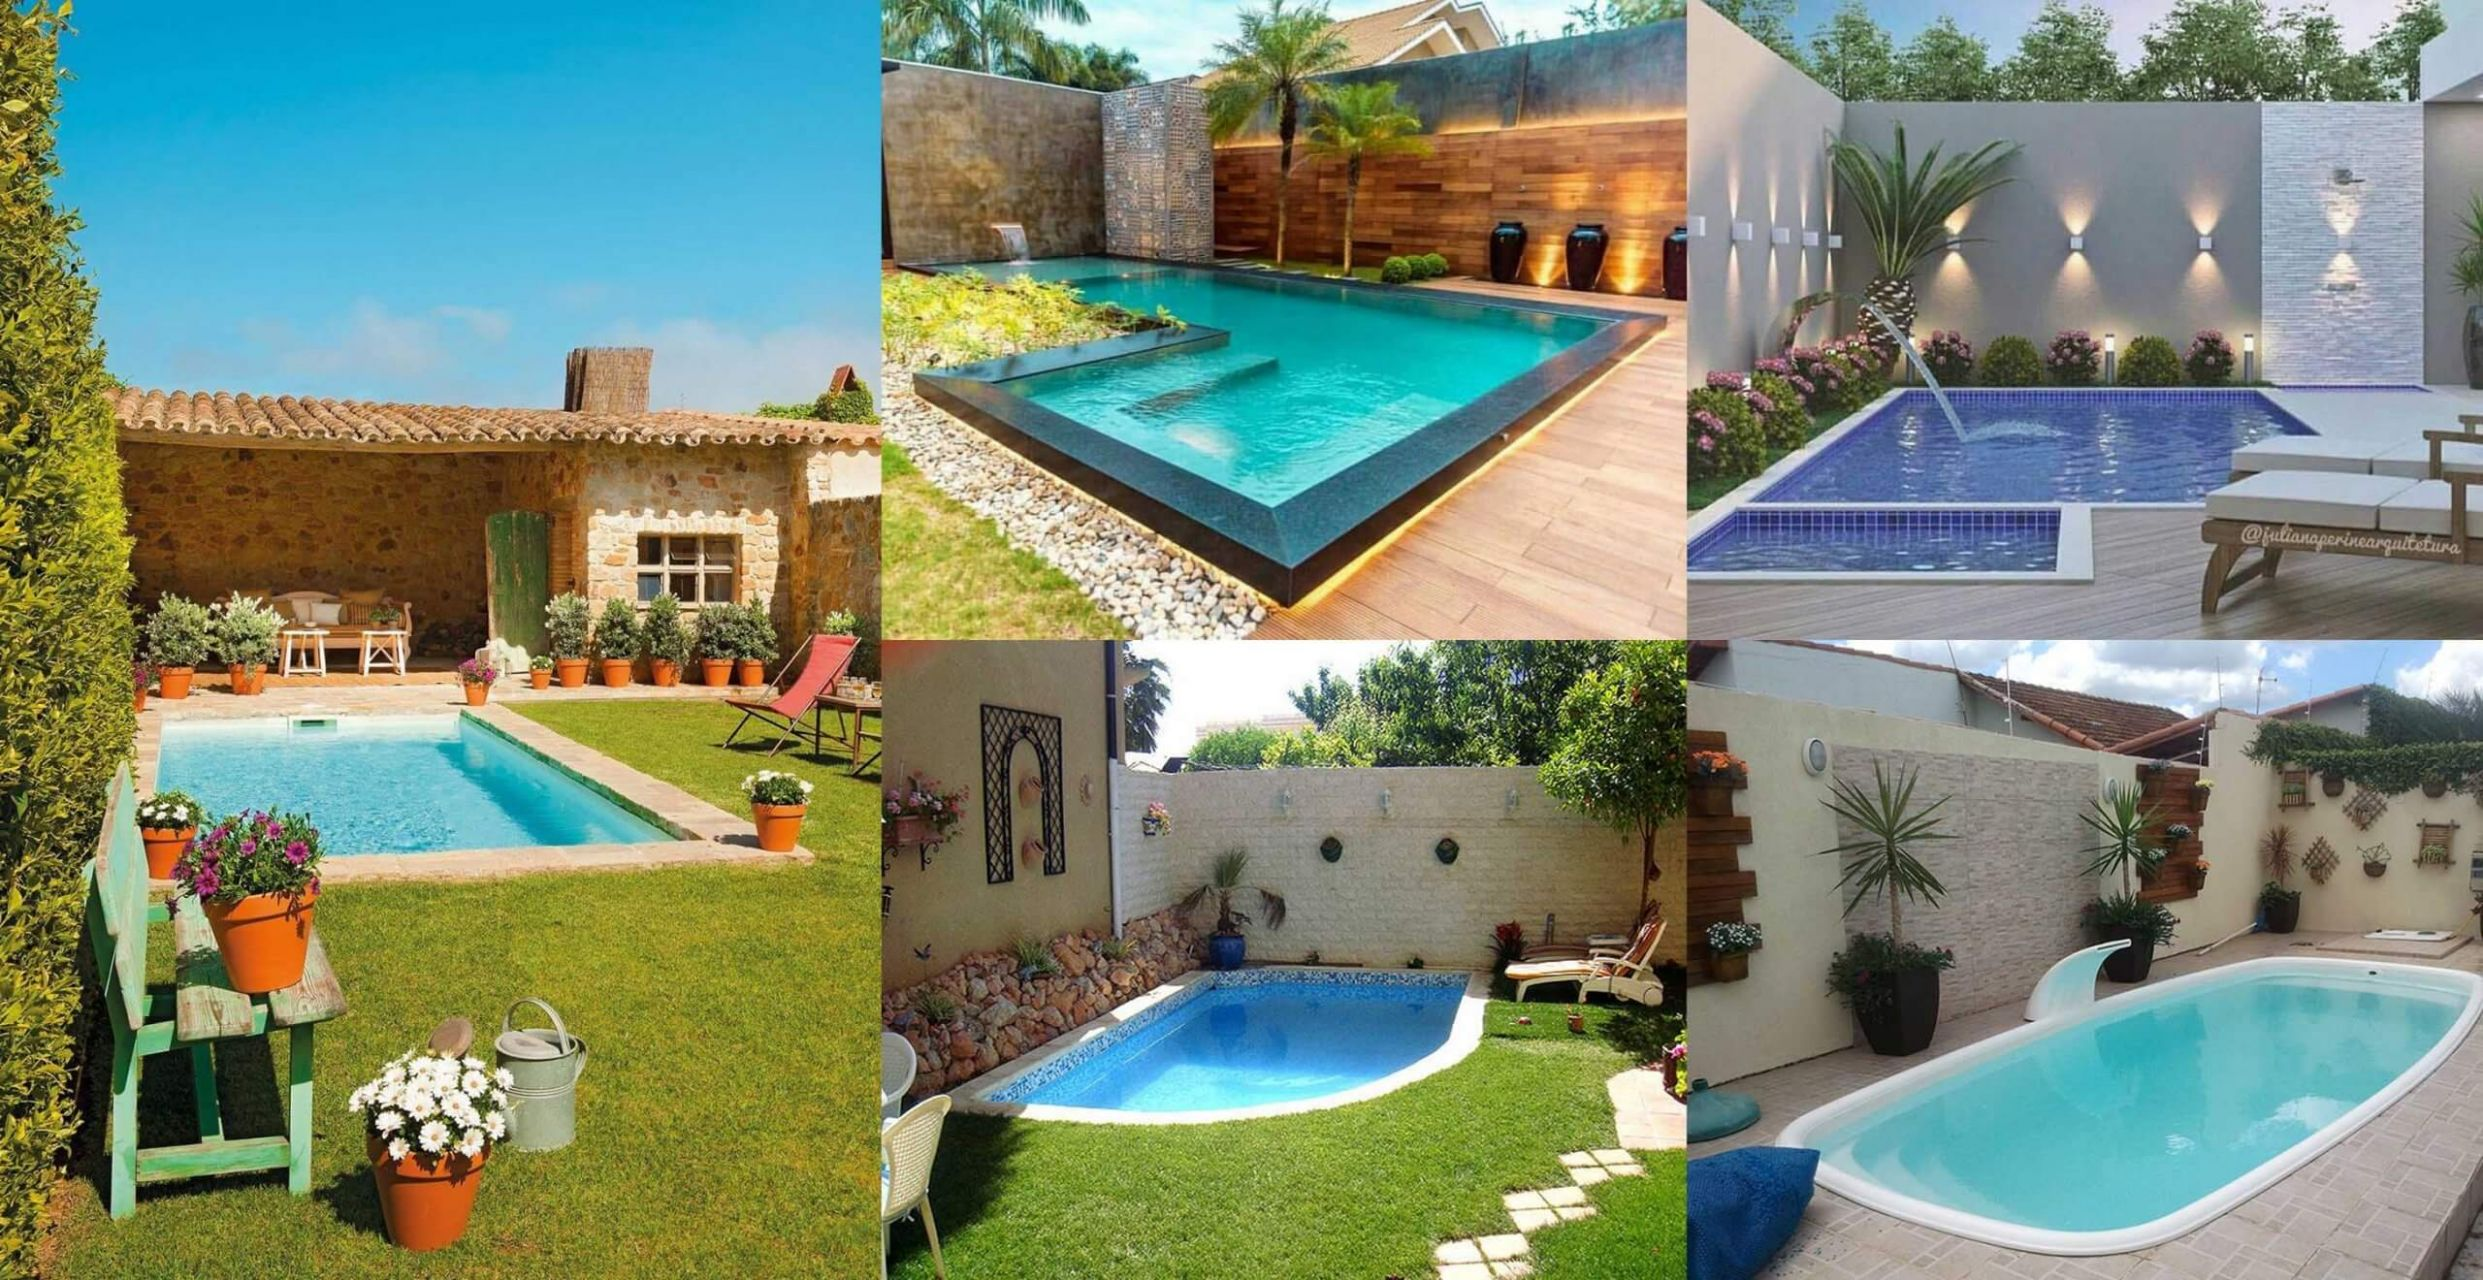 Top 8 Amazing Small Pool Ideas For Your Backyard - Engineering ...